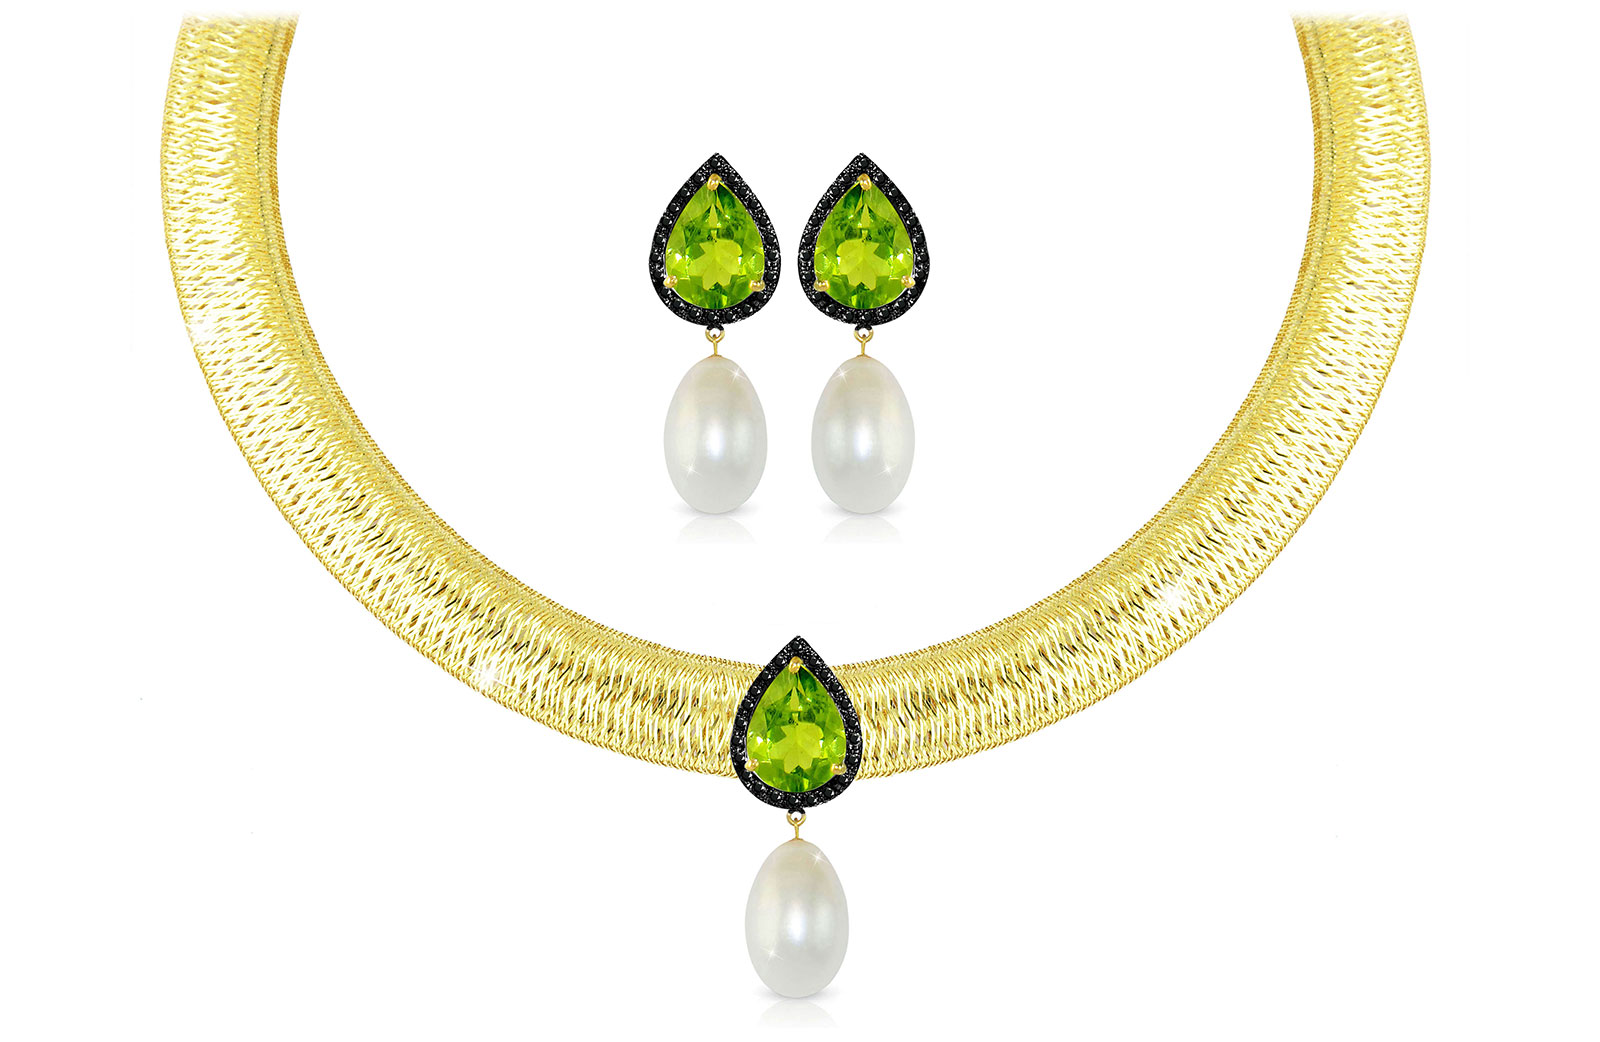 Vera Perla 18K Gold 0.36ct Black Diamonds, Peridot and 13mm White Pearl Jewelry Set - 2 pcs.